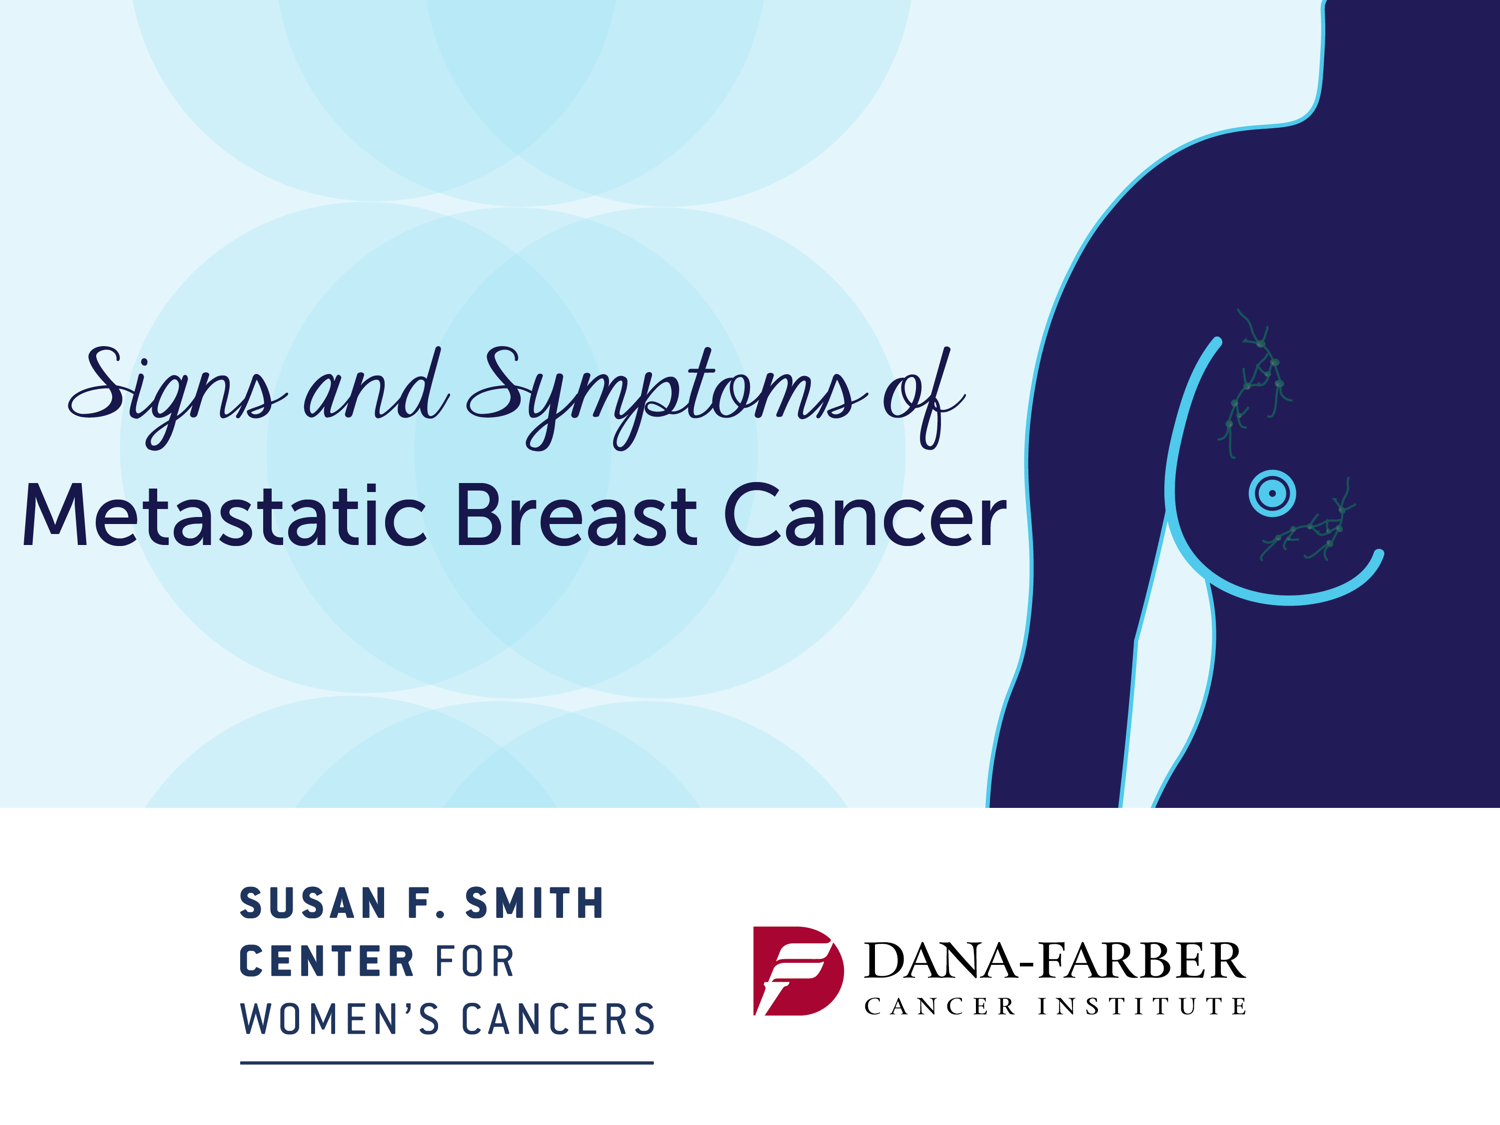 Signs and symptoms of metastatic breast cancer